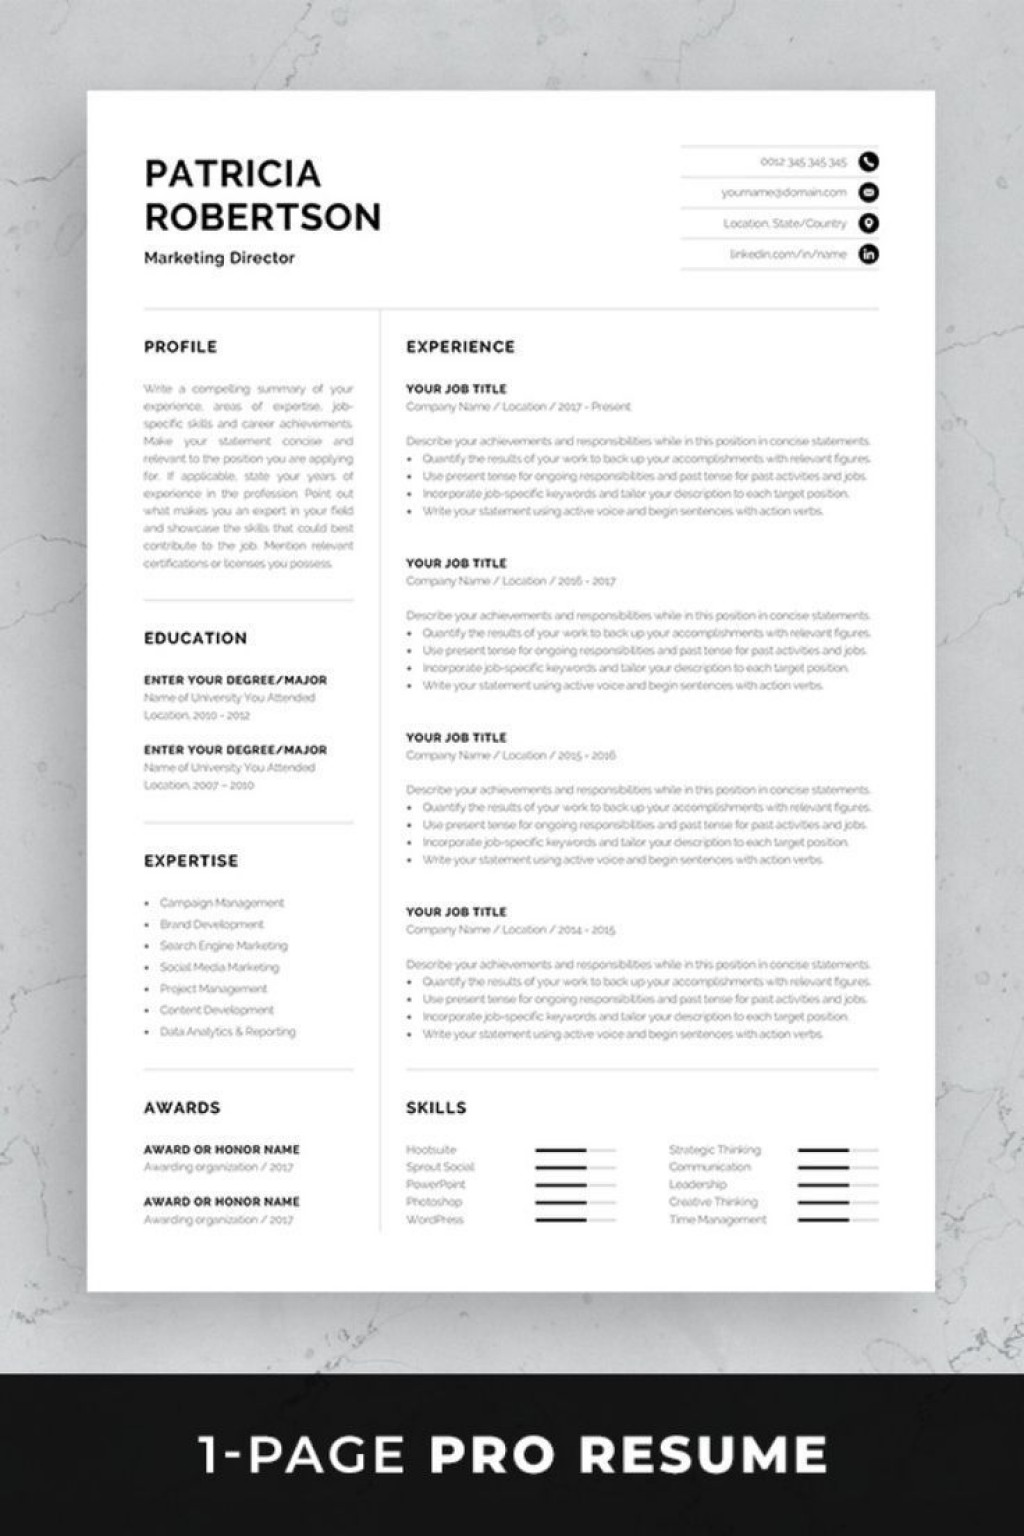 002 Simple 1 Page Resume Template Concept  Templates One Basic Word Free Html DownloadLarge